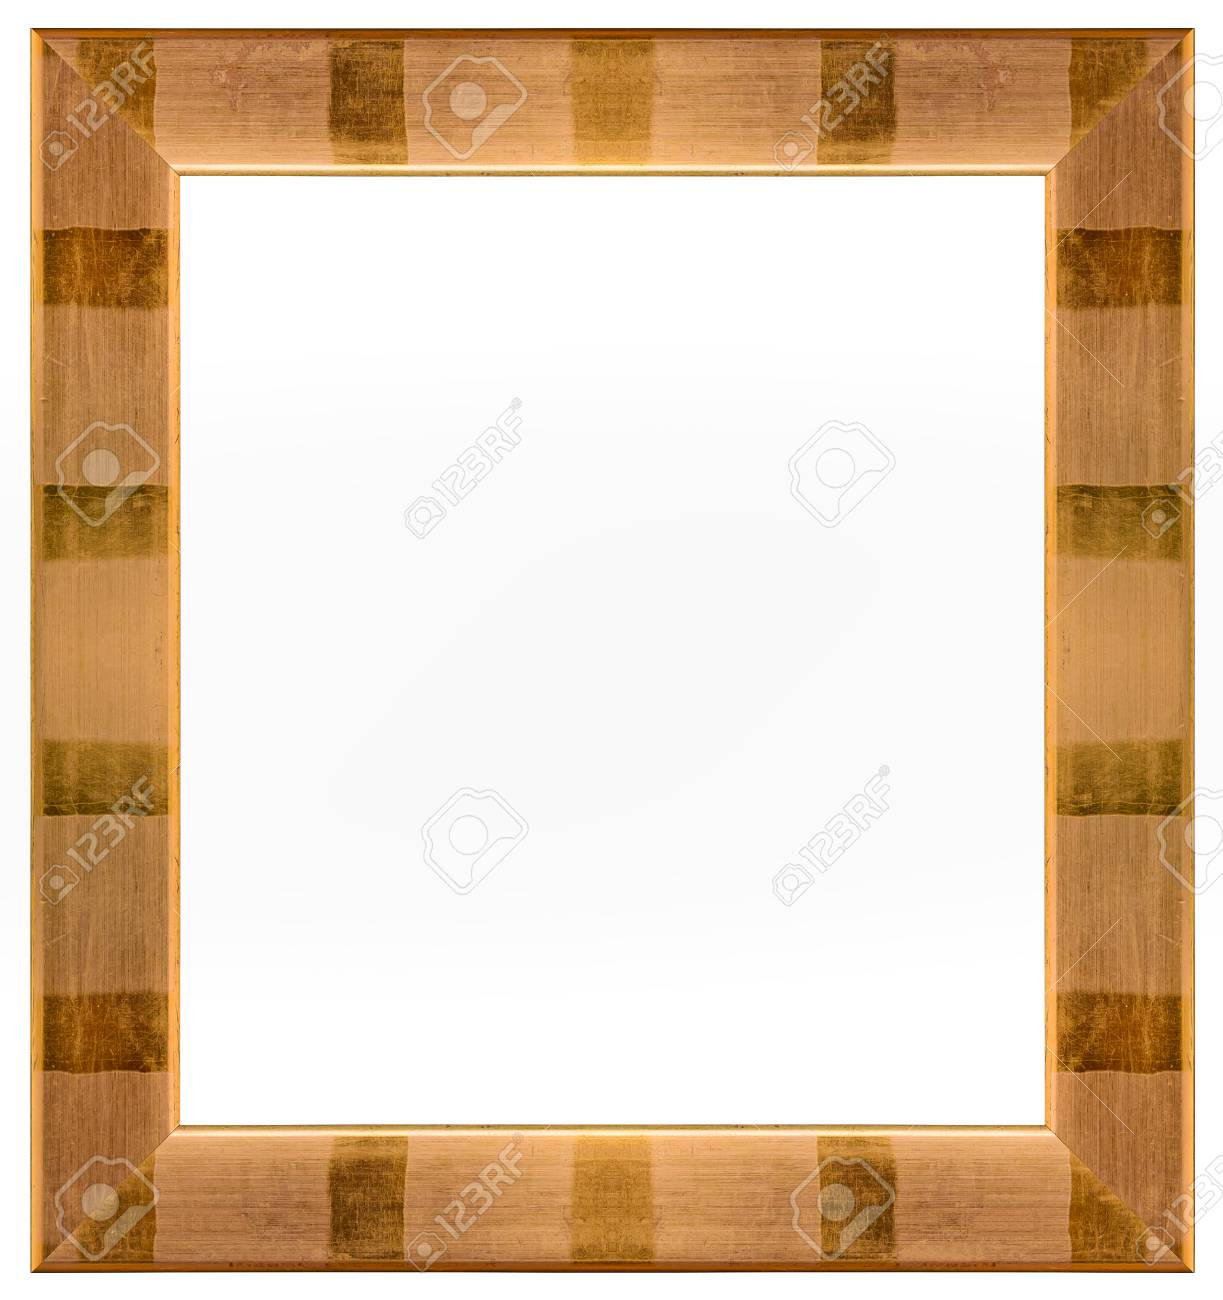 Copper Red And Gold Picture Frame For Painting Or Picture On.. Stock ...